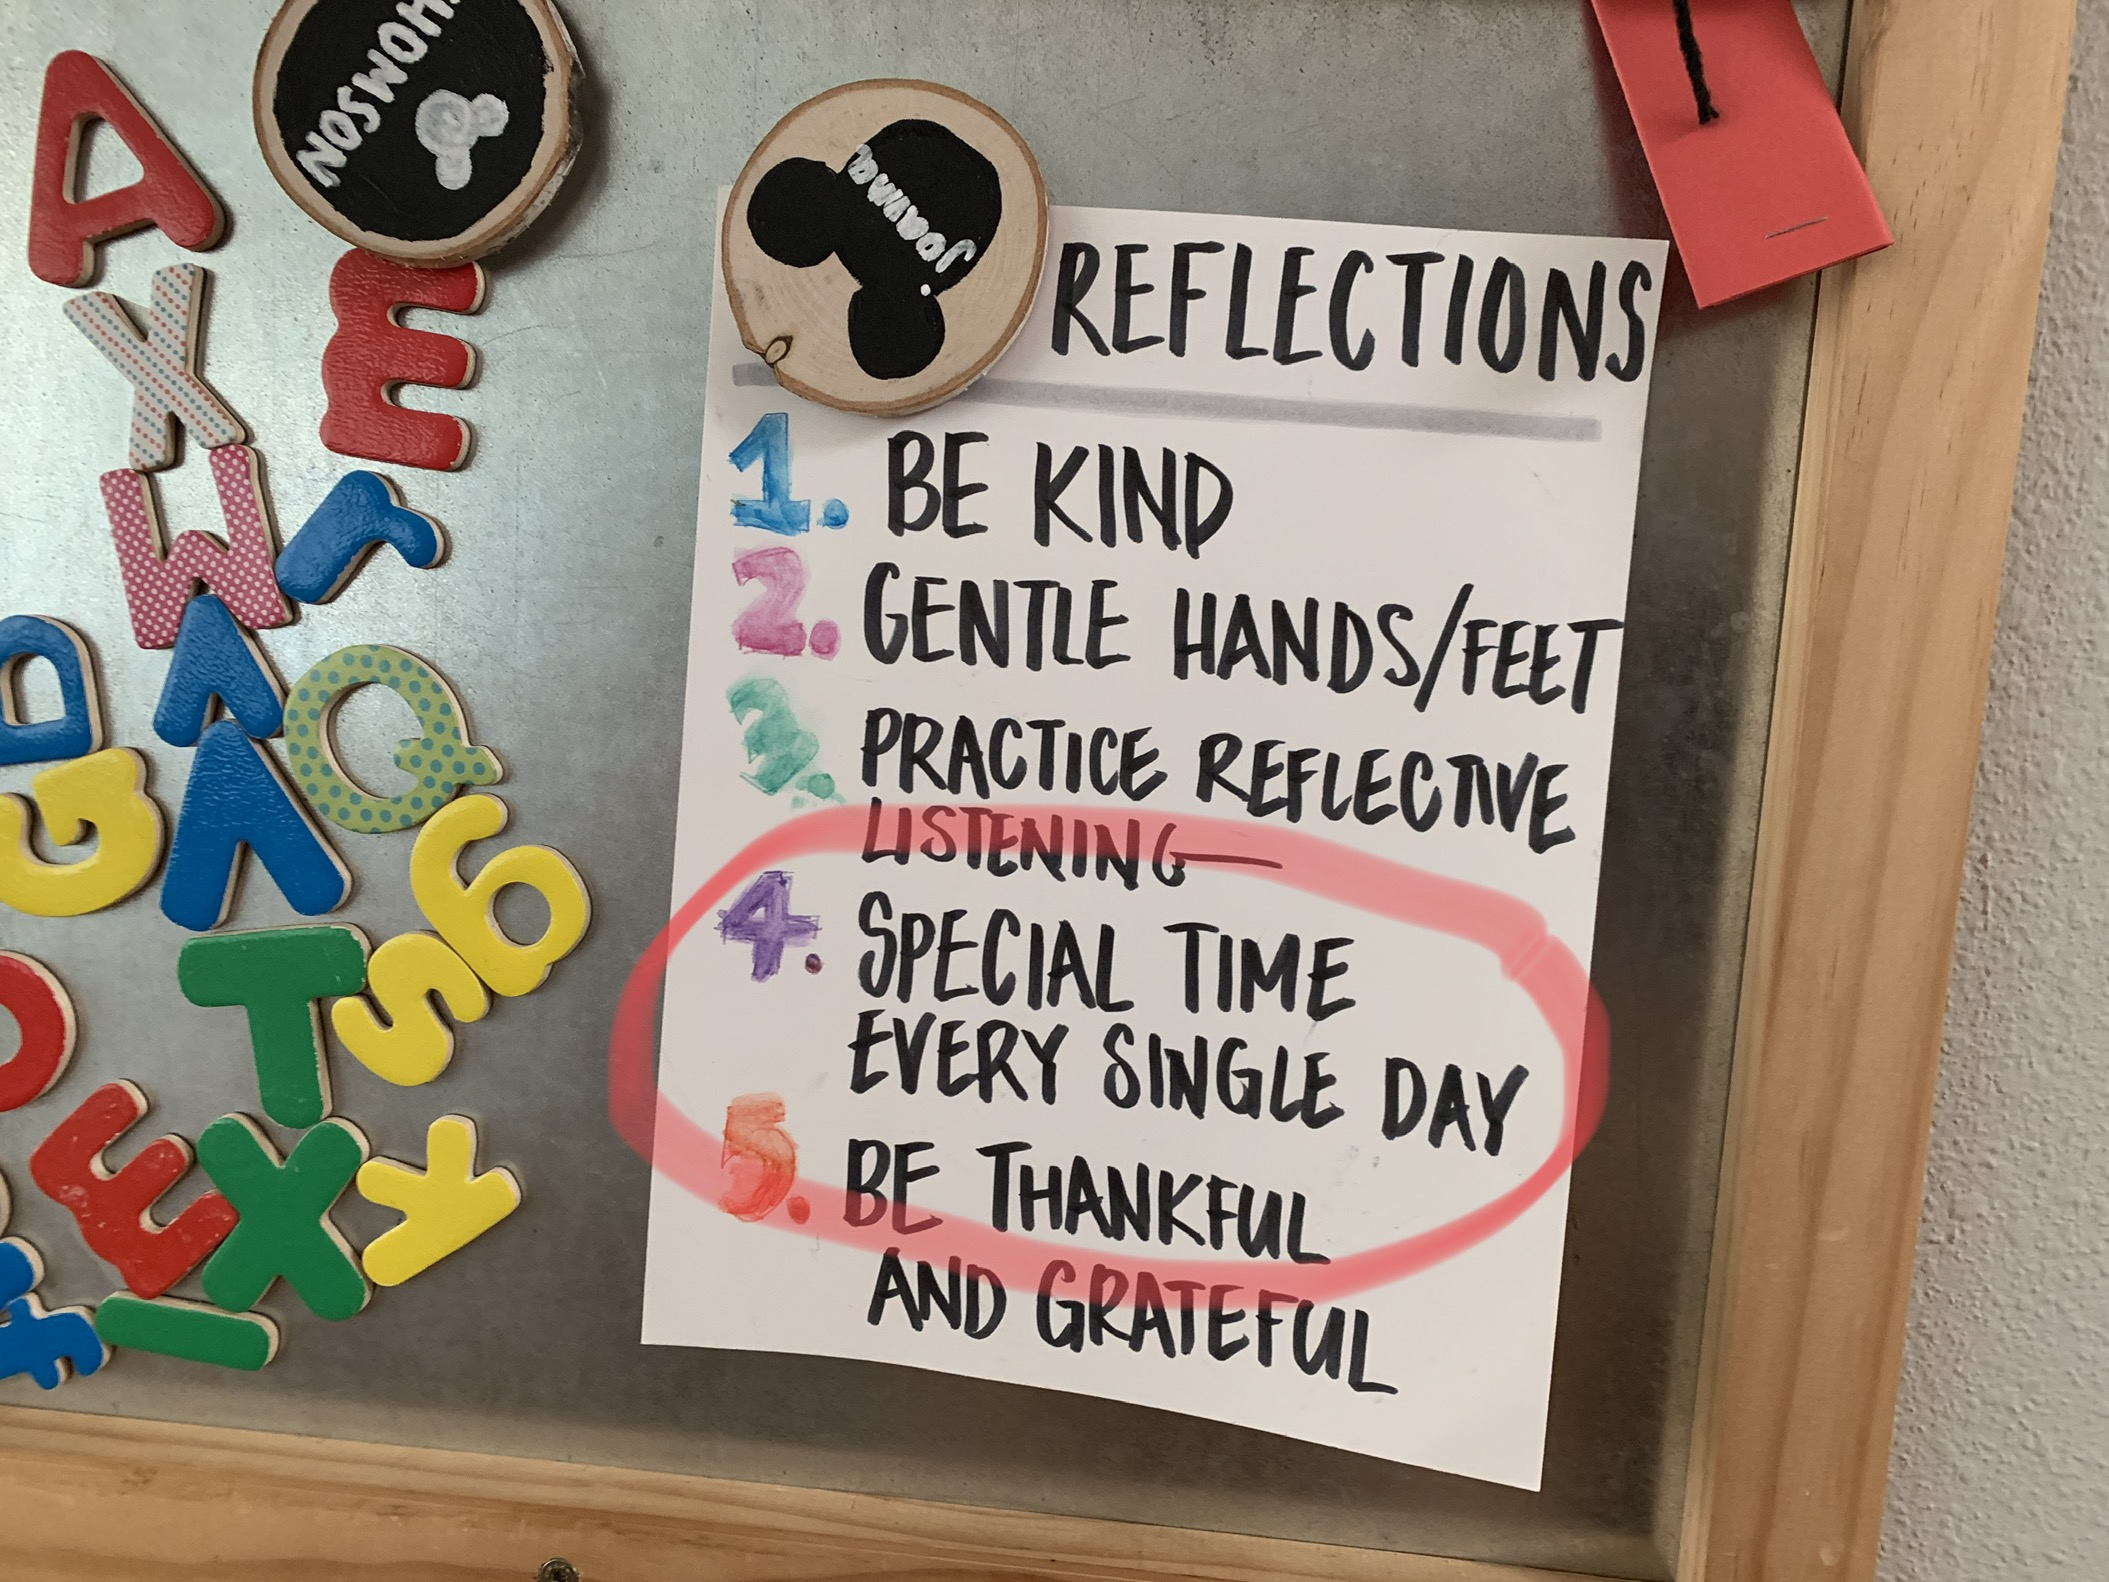 Rule #4: Special time every single day